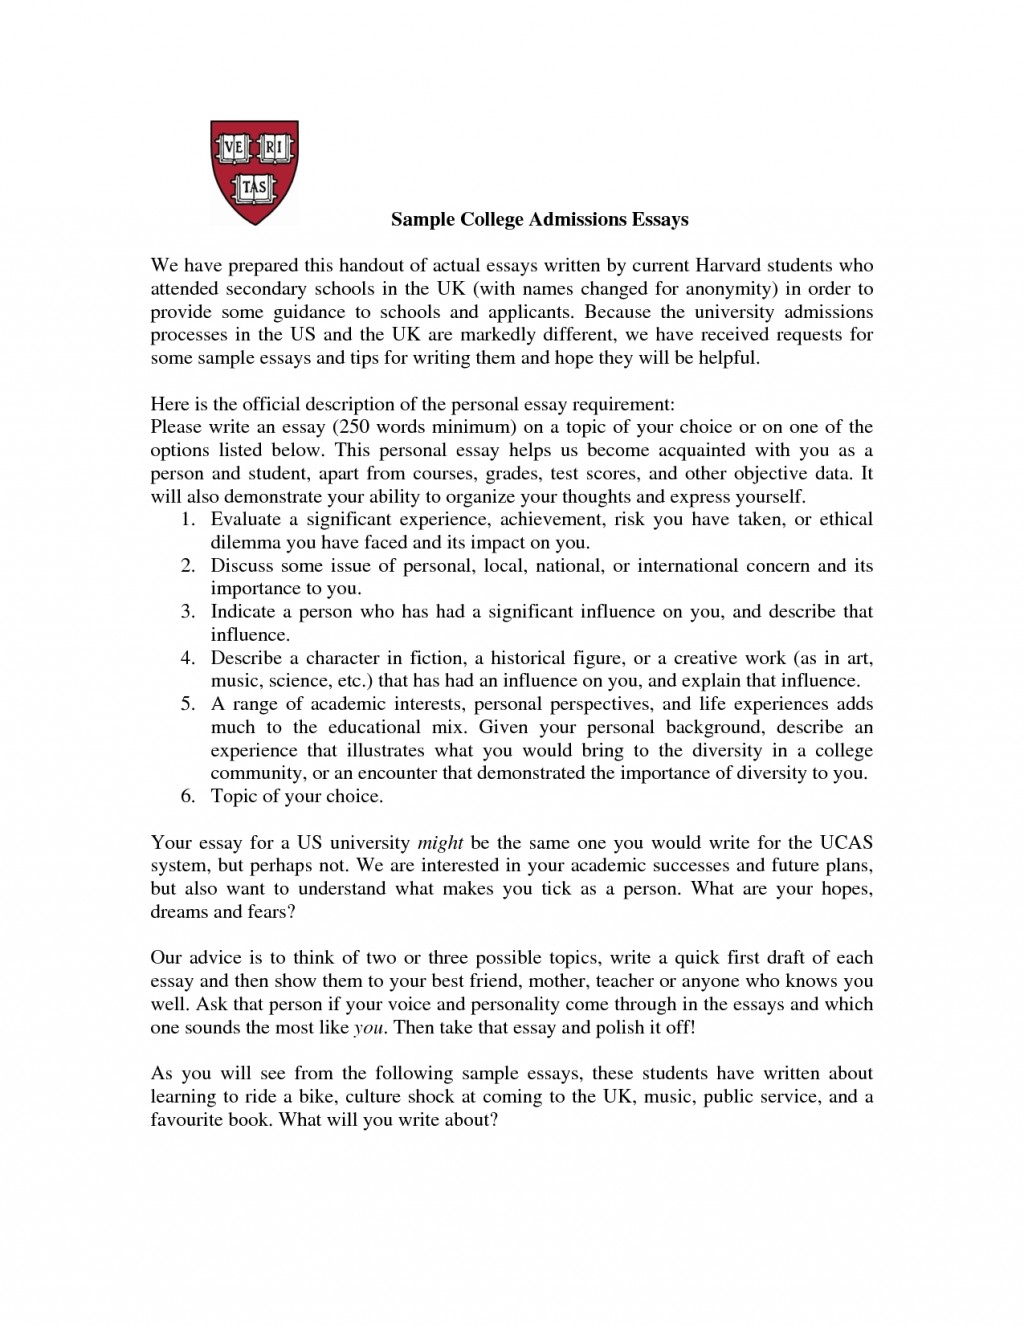 024 College Admissionssayxamples Writings Andssays Graduate Business Admissions Sample For School International Wit Counseling Psychology Nursing Samplesngineeringducation Freexample Surprising Essay Admission Masters How To Write An Degree In Large